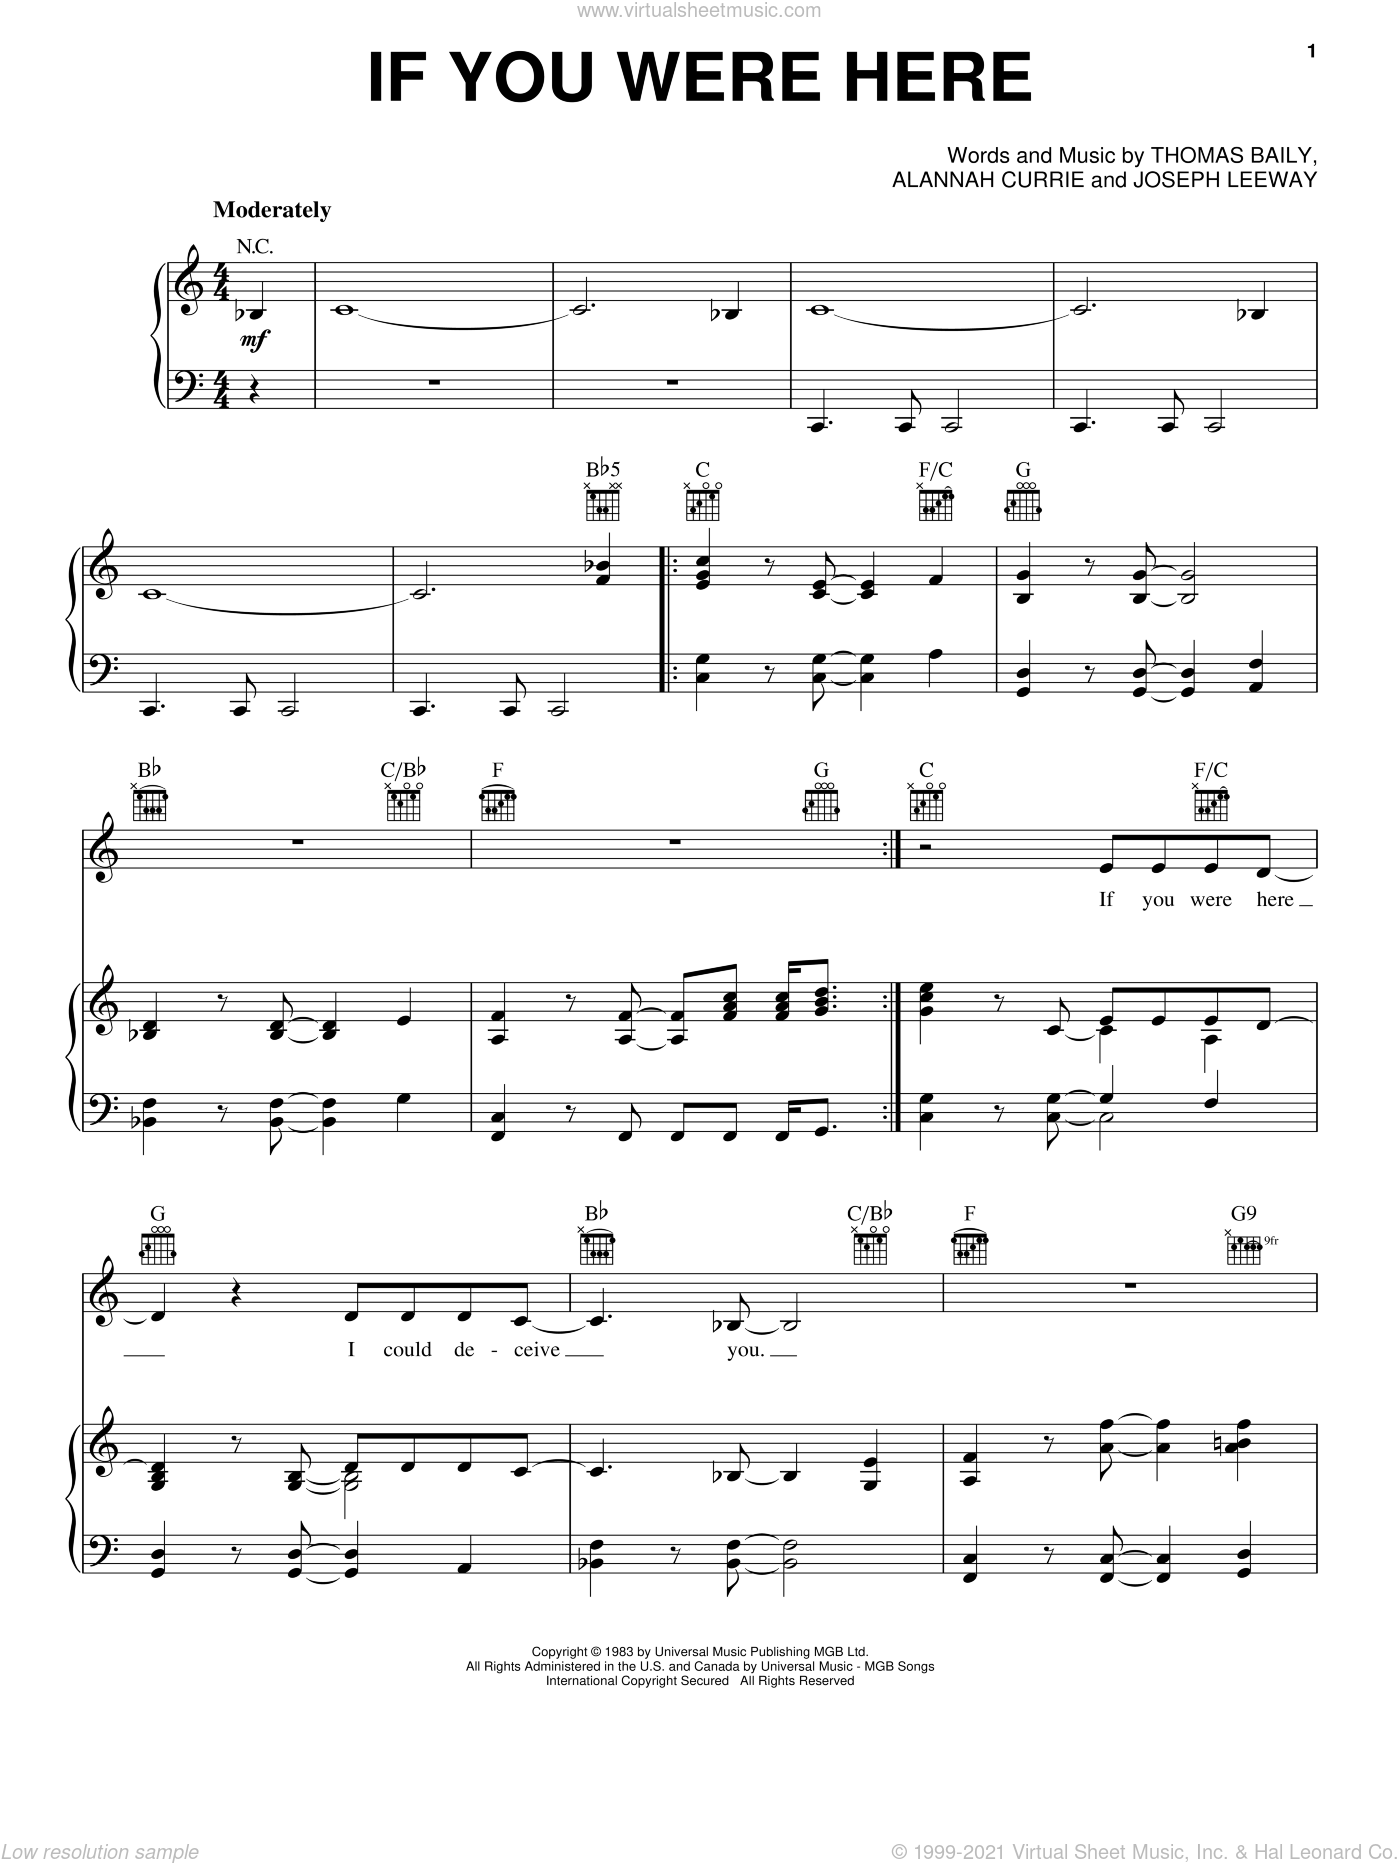 If You Were Here sheet music for voice, piano or guitar by Thomas Baily. Score Image Preview.